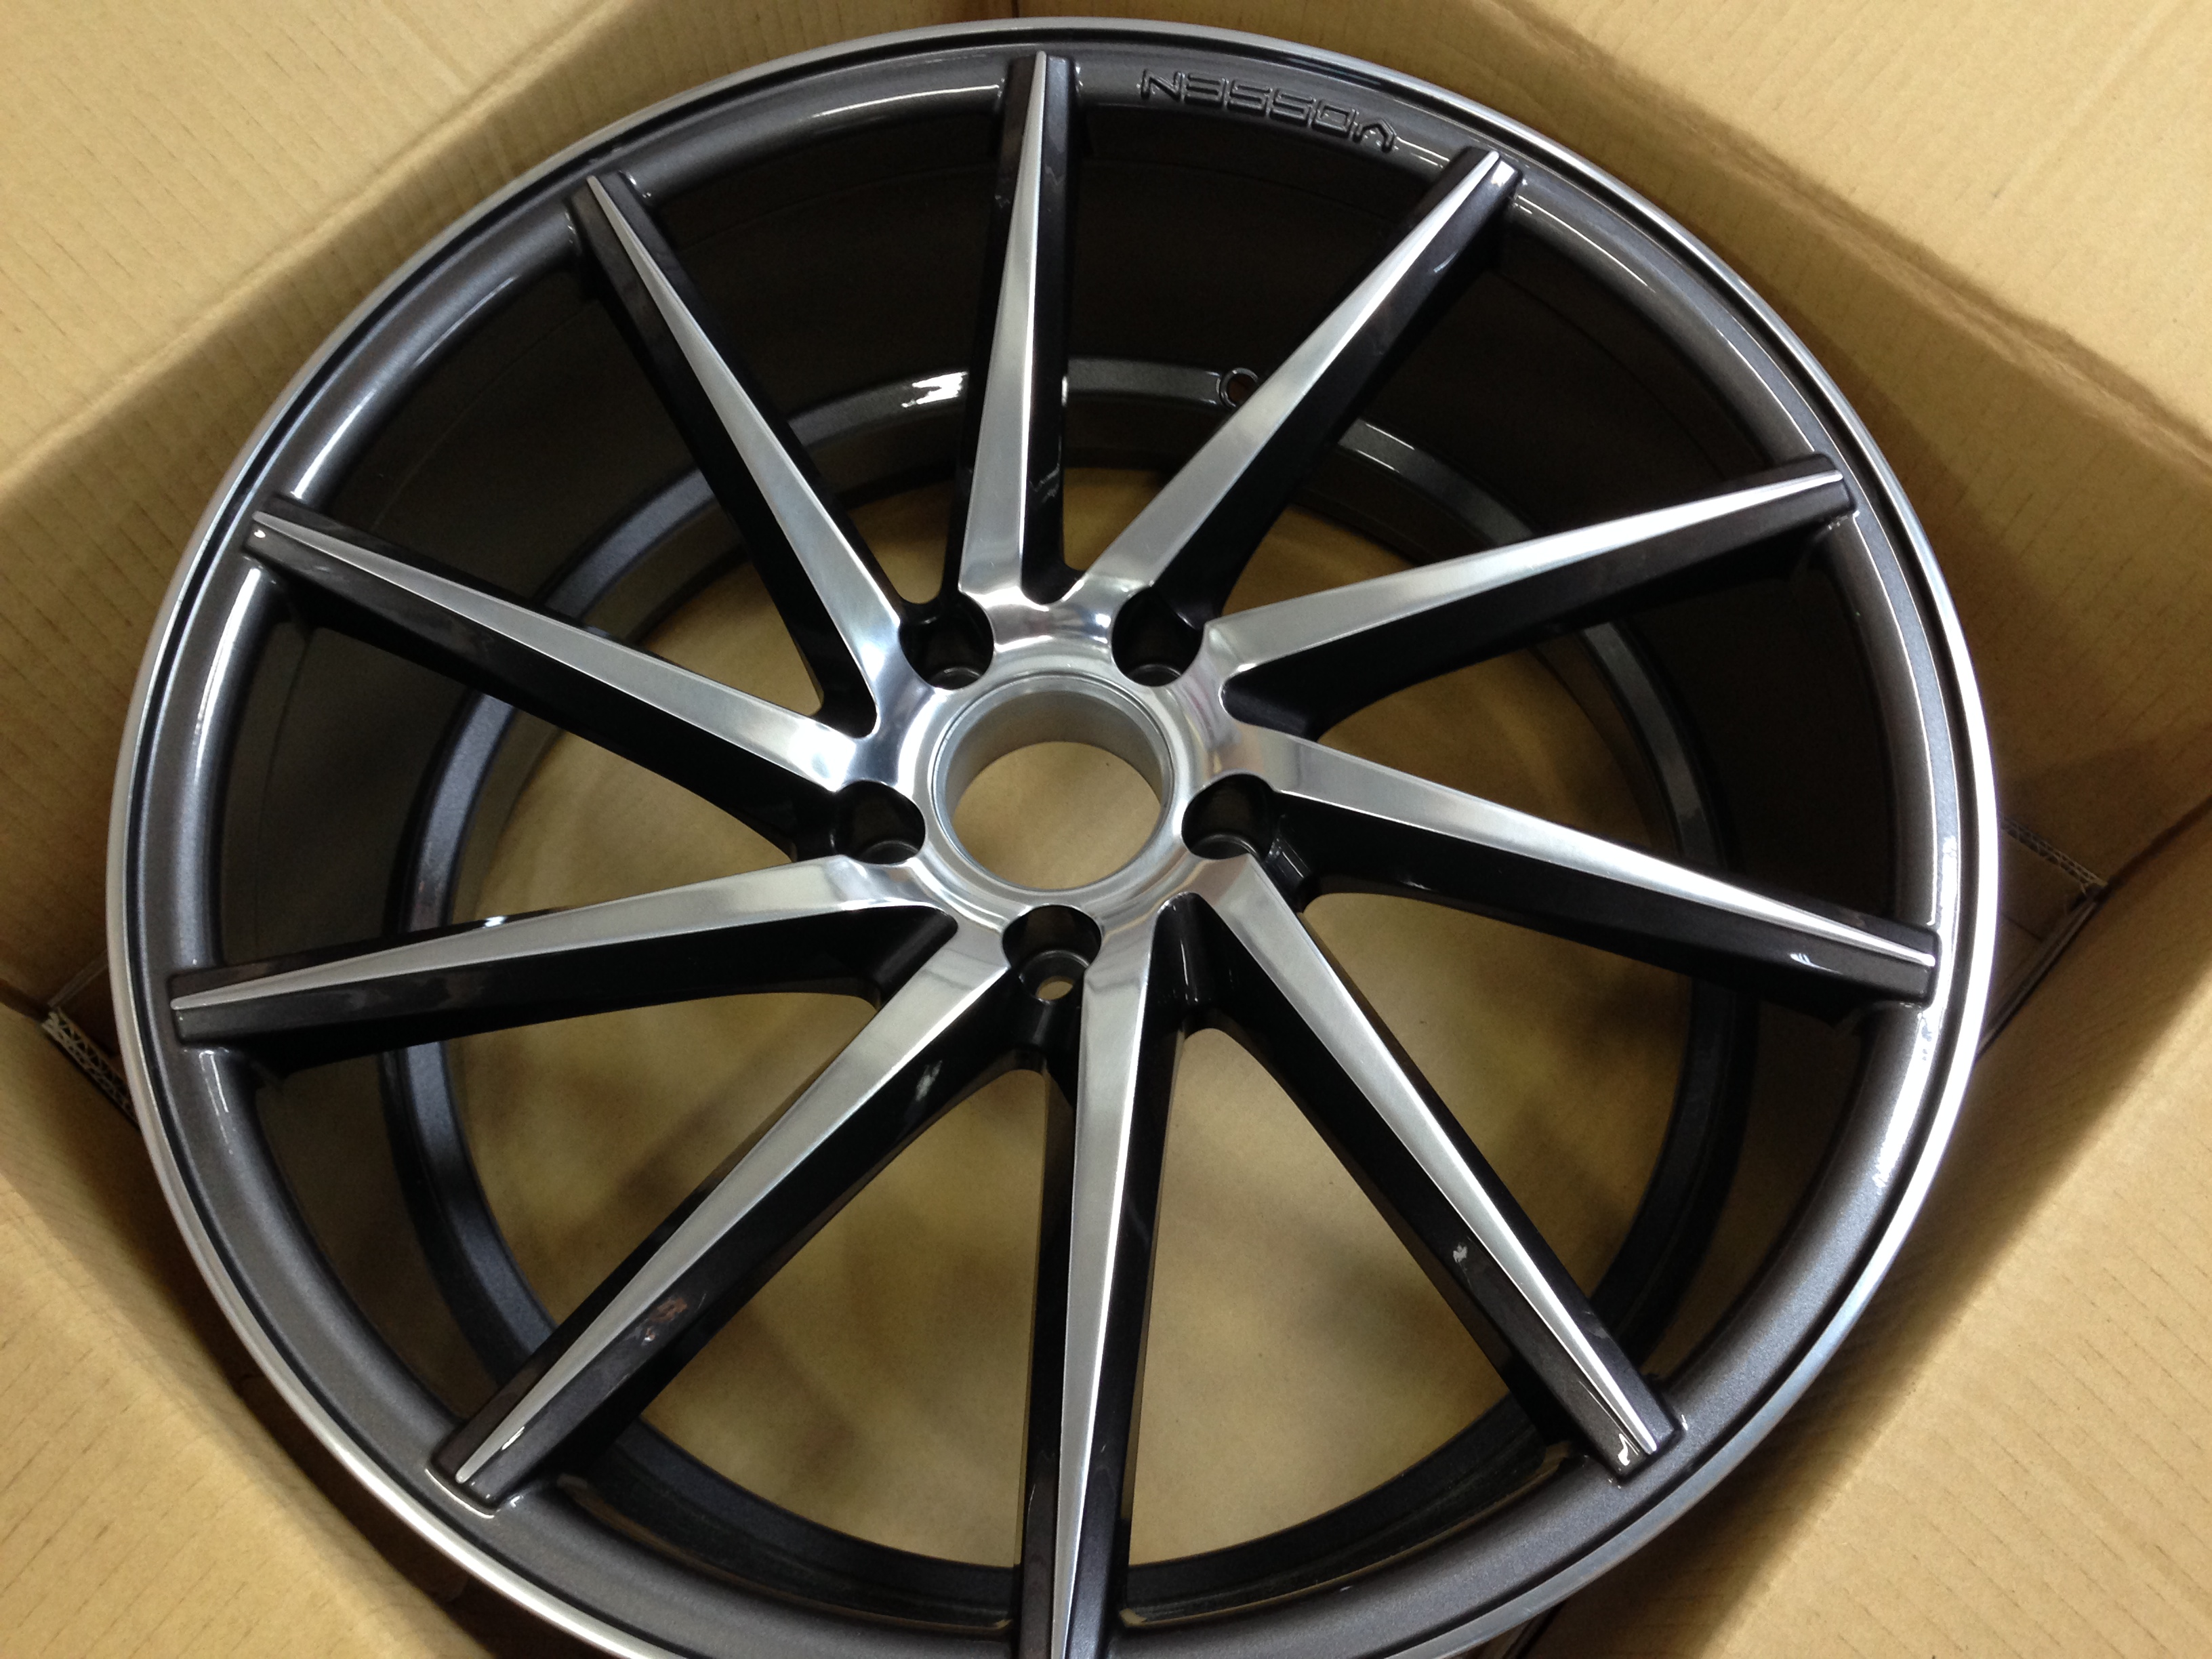 Click image for larger version  Name:vossen-cvt-custom-finish-gloss-graphite-polished-face-02.JPG Views:361 Size:1.86 MB ID:168878